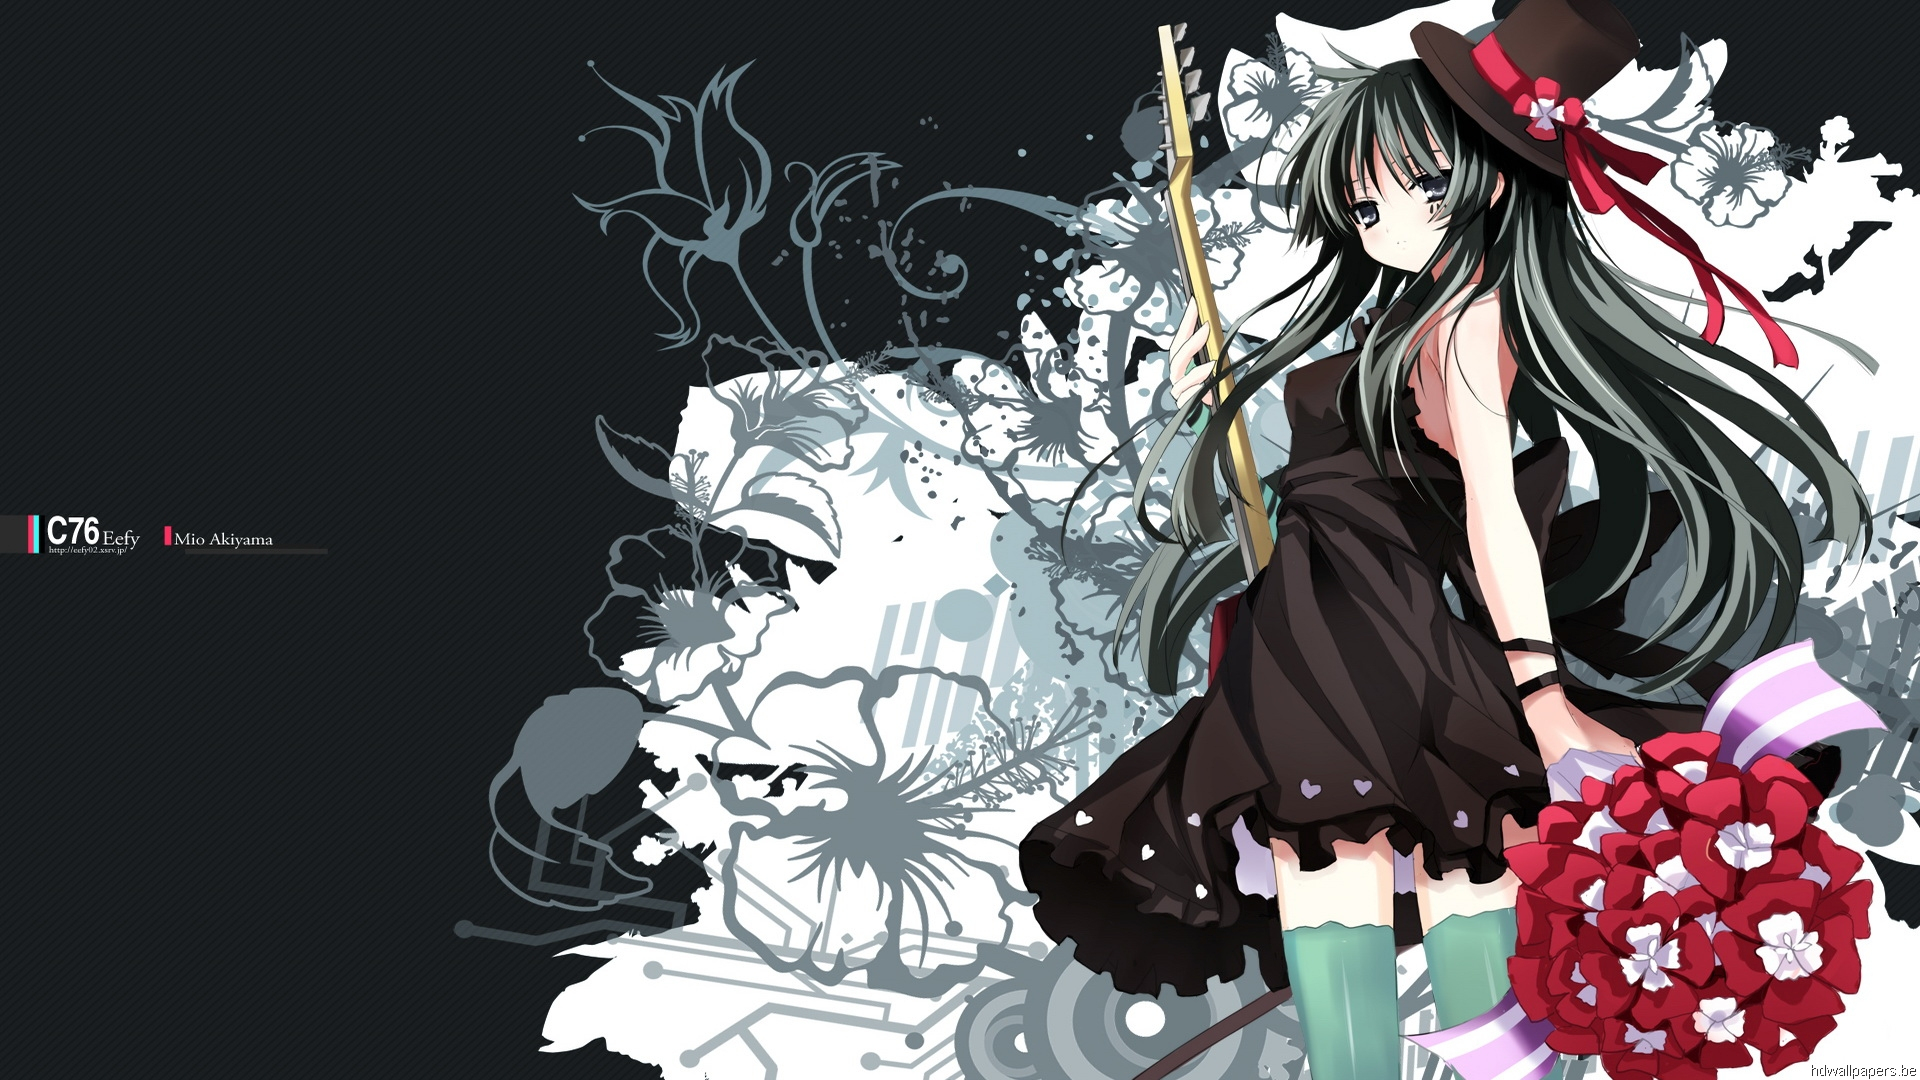 Anime-Girl-HD-p-Free-wallpaper-wpc5802148